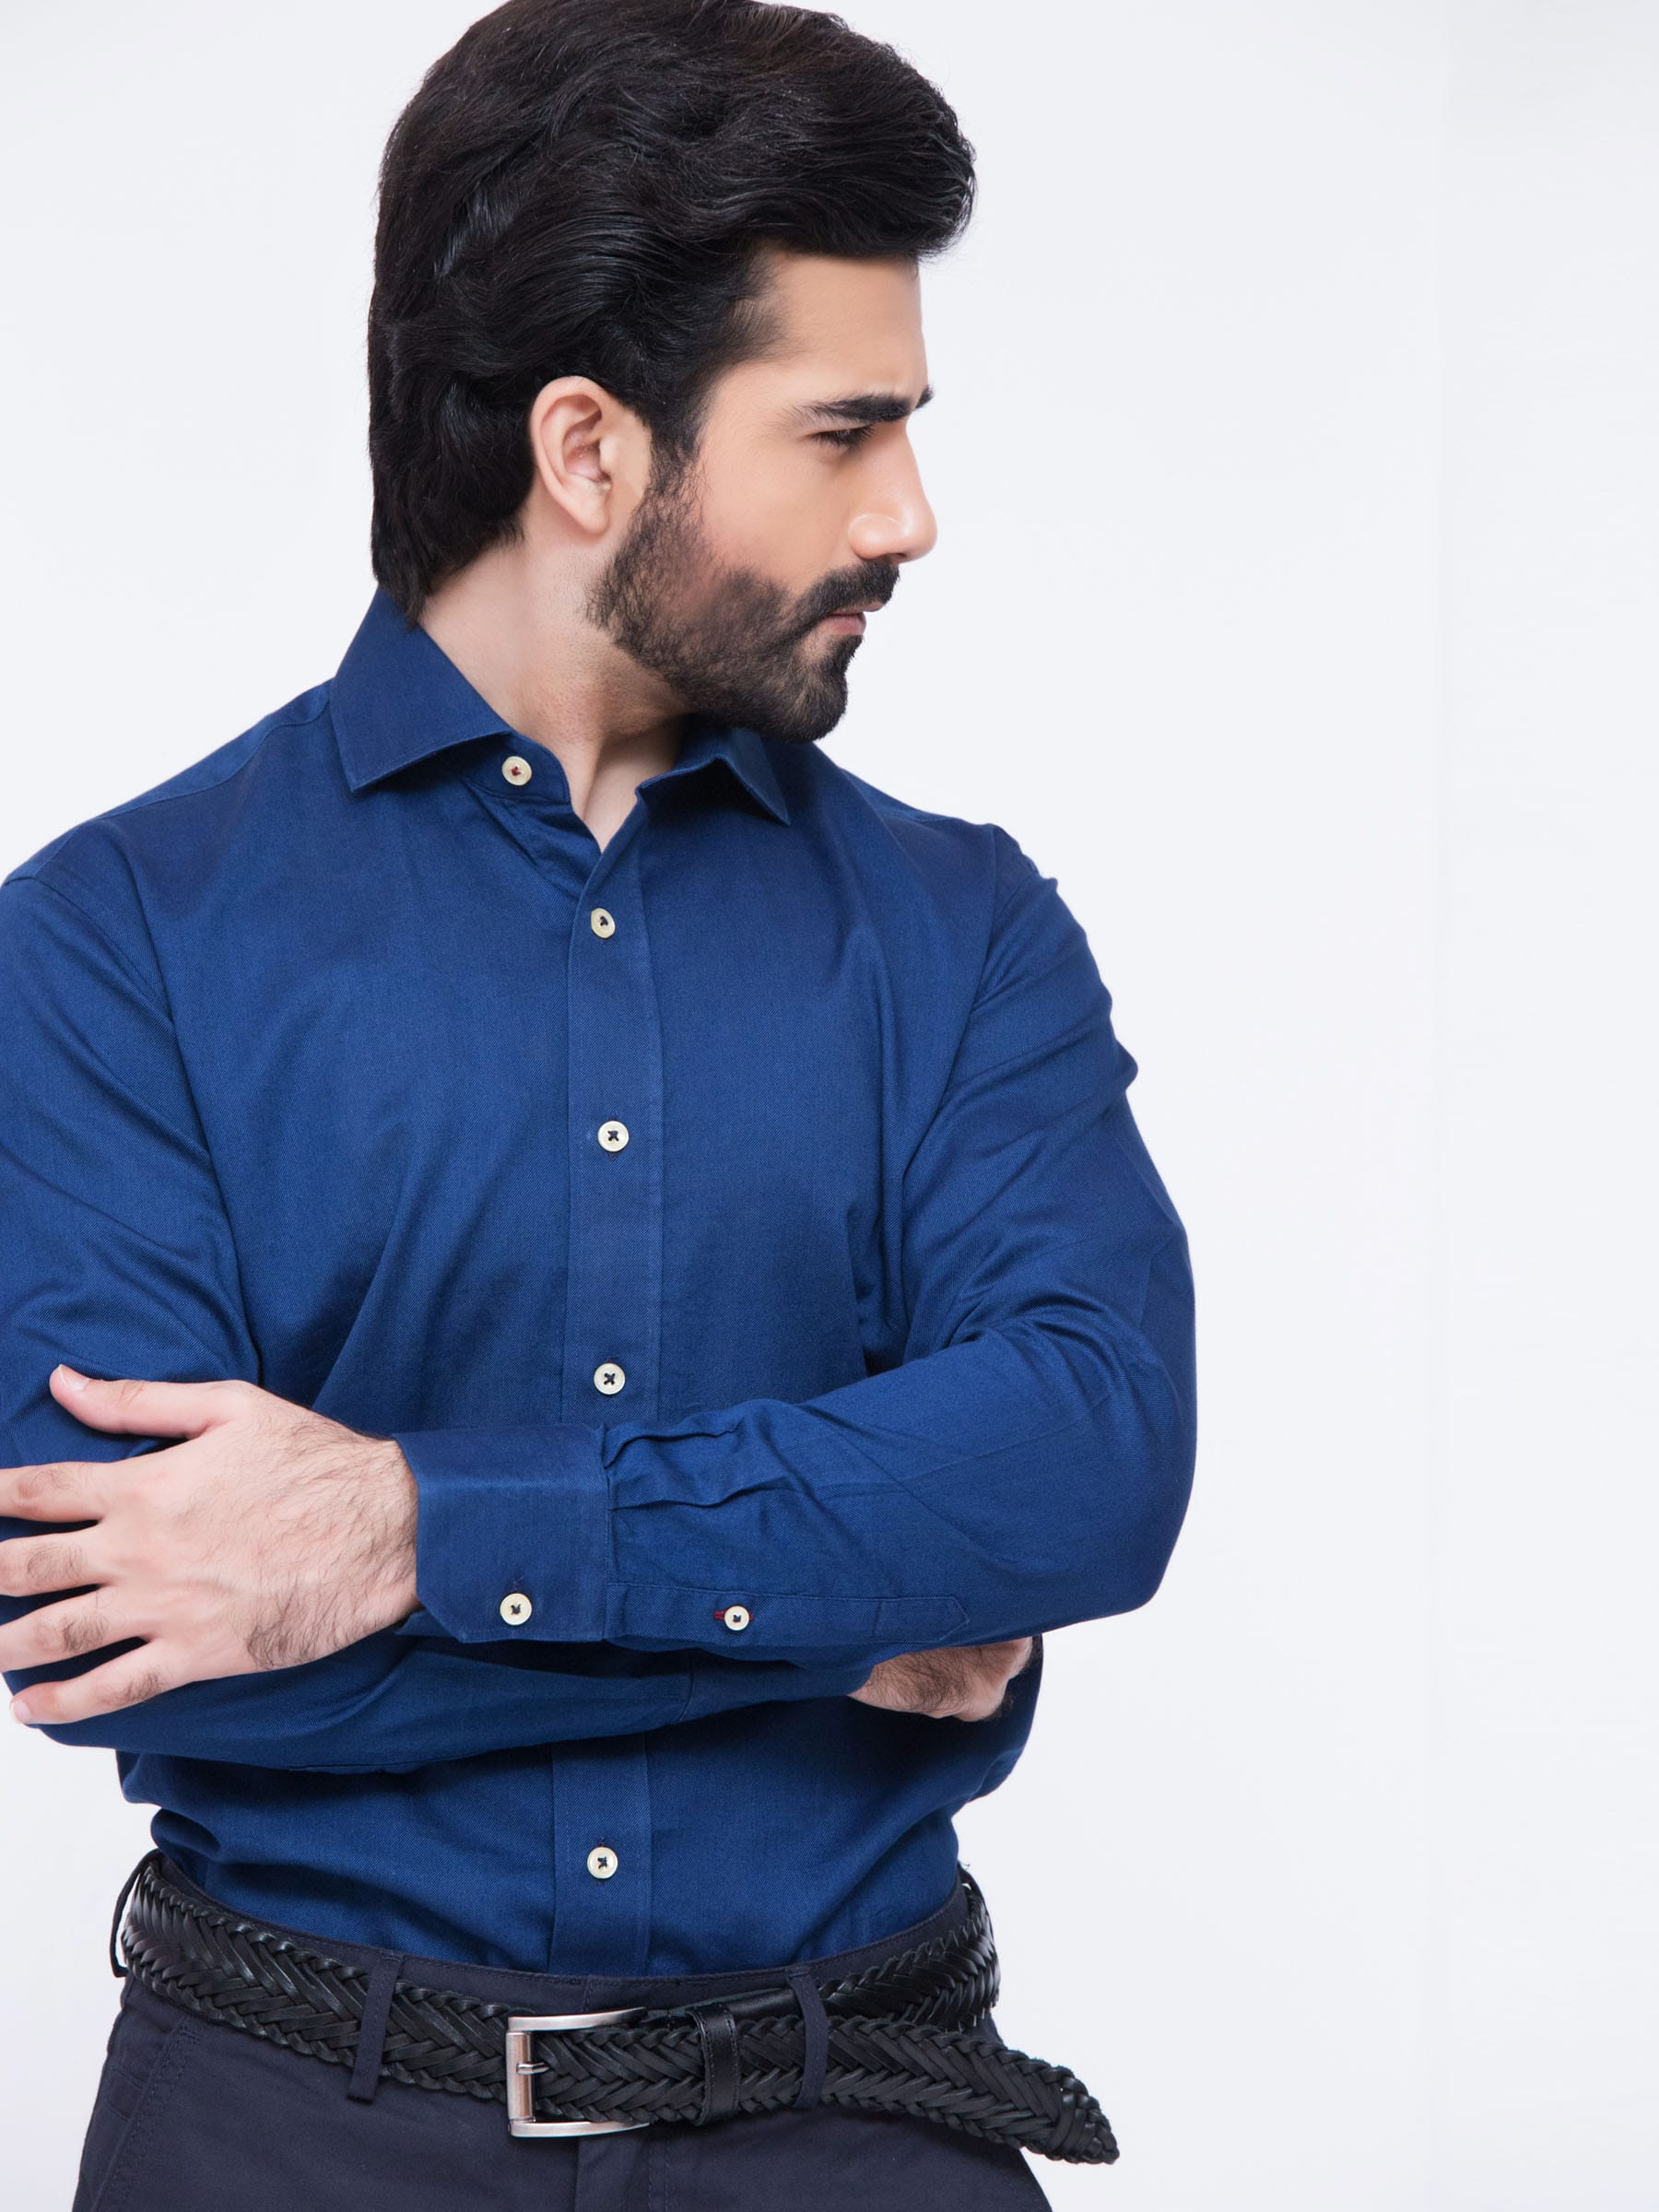 Different Types of Shirt Collars | Mens Shirt Collars | Cutaway Collar